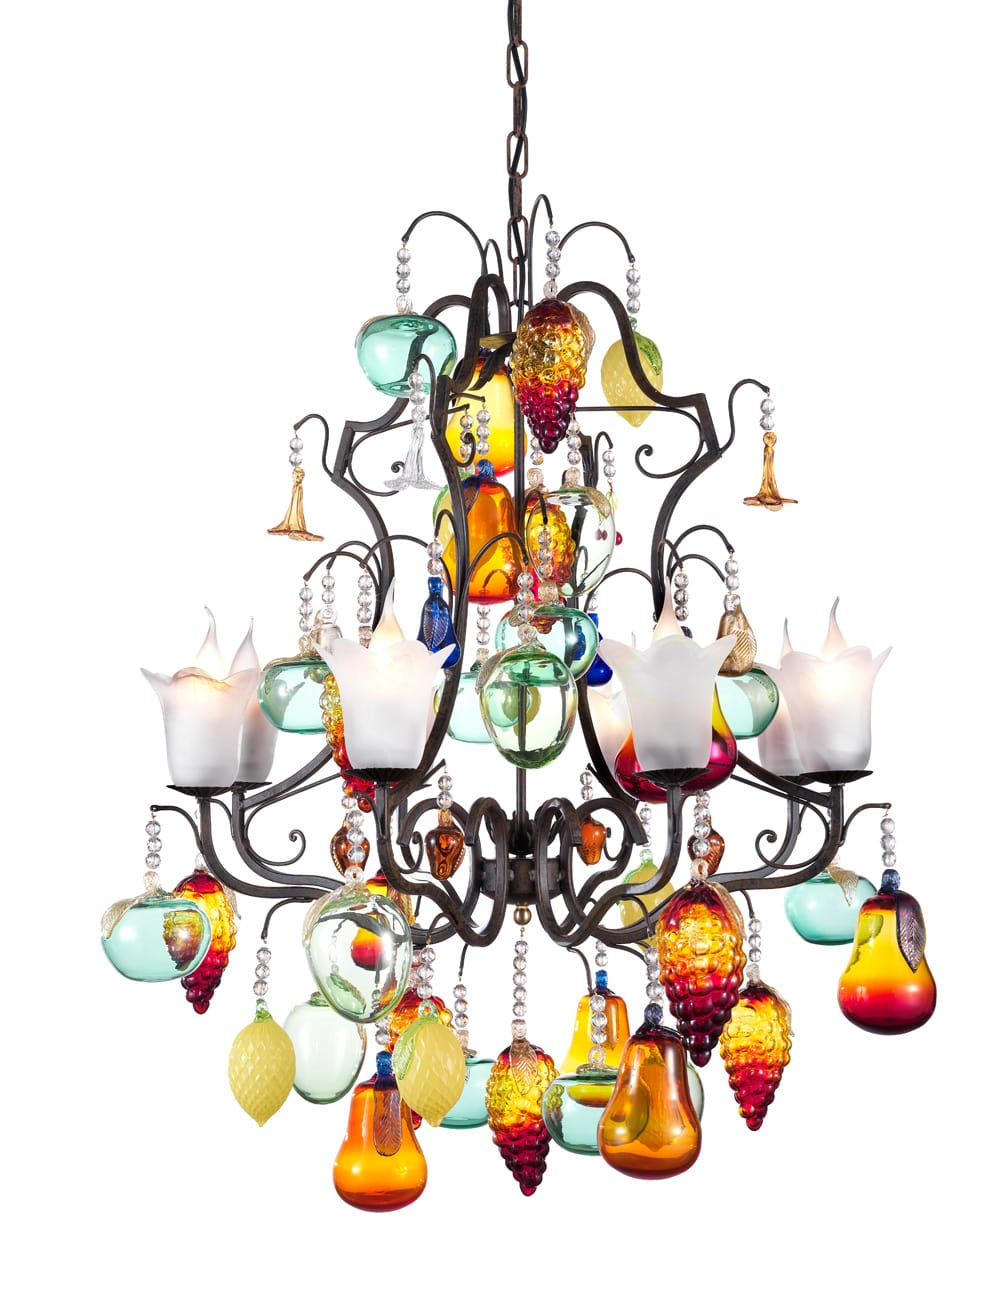 decorative-lighting-chandeliers-1